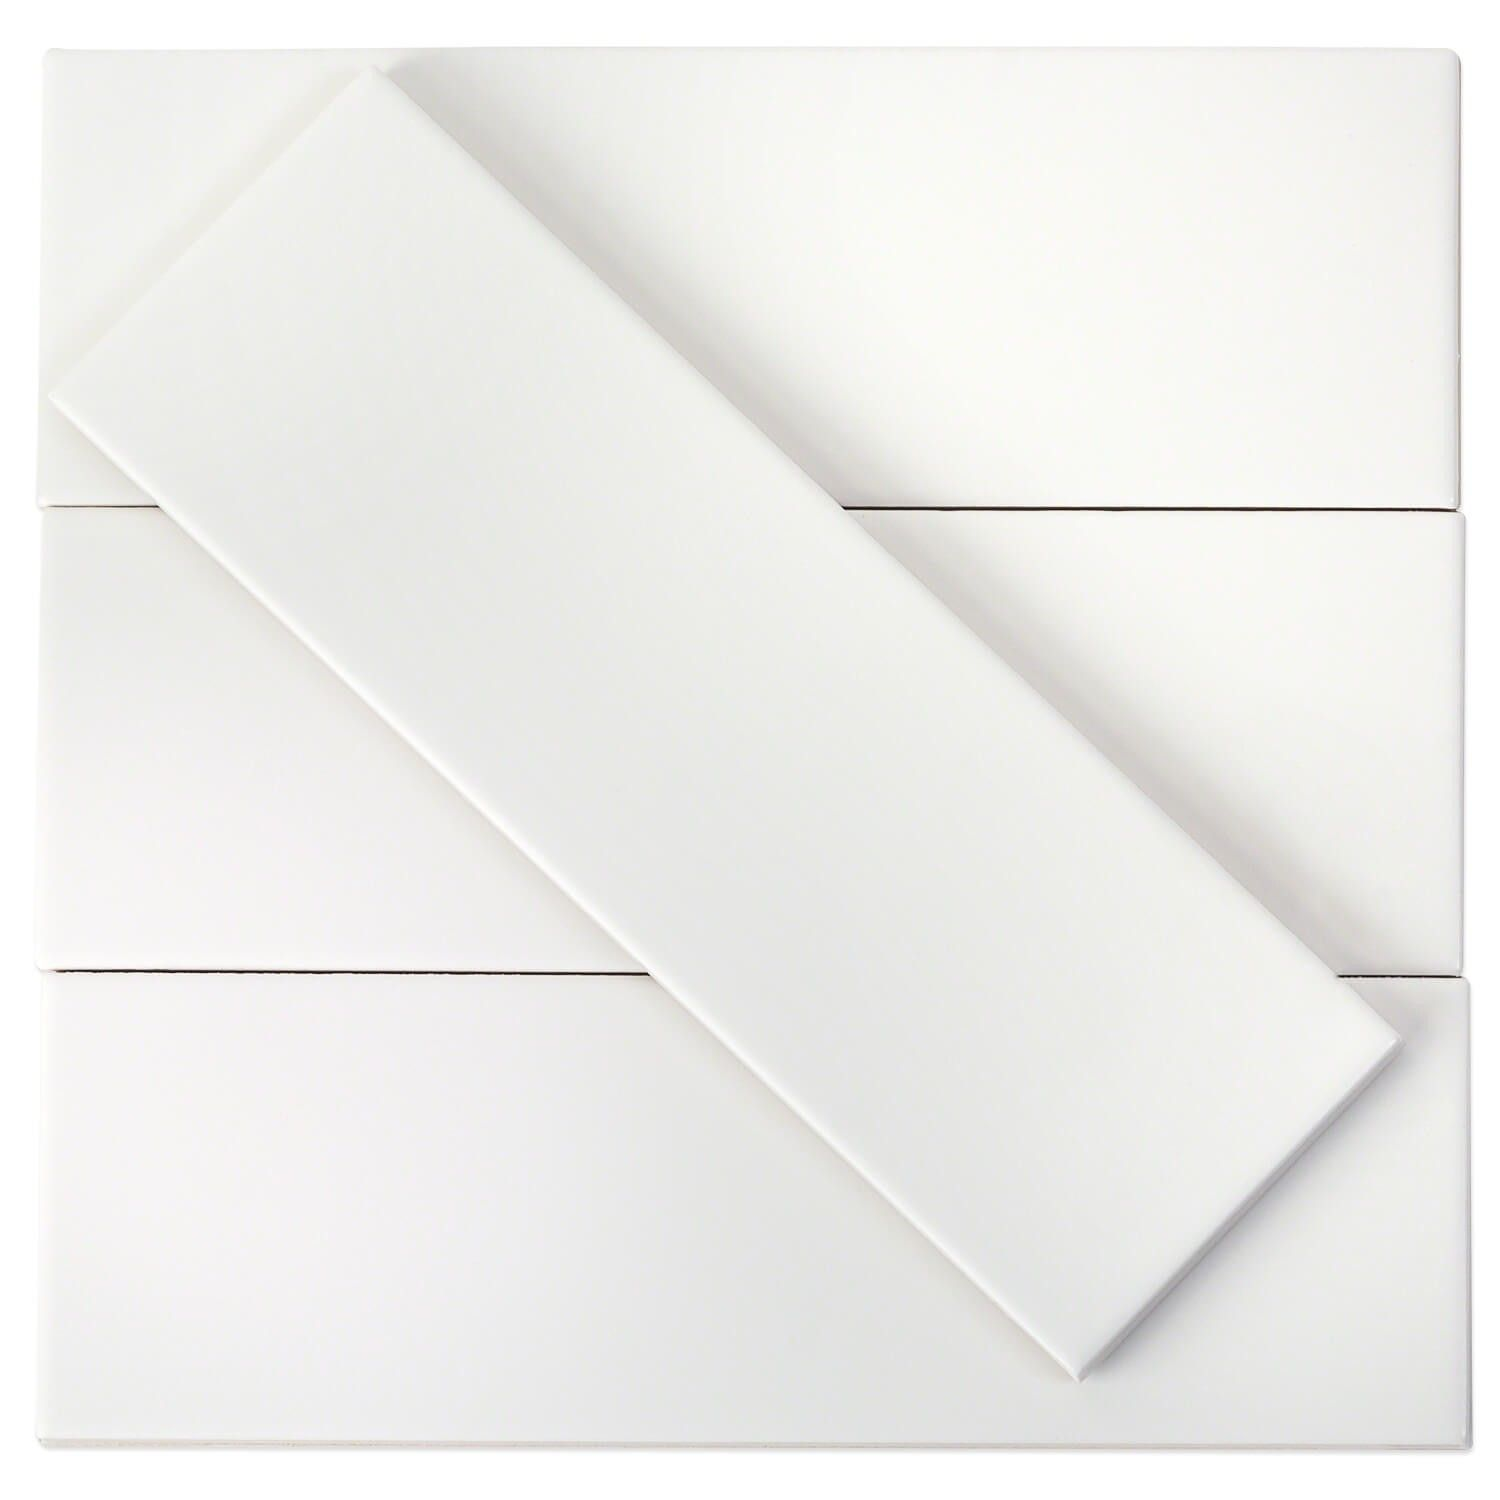 London White 3x9 Ceramic Tile Ceramic Subway Tile Matte